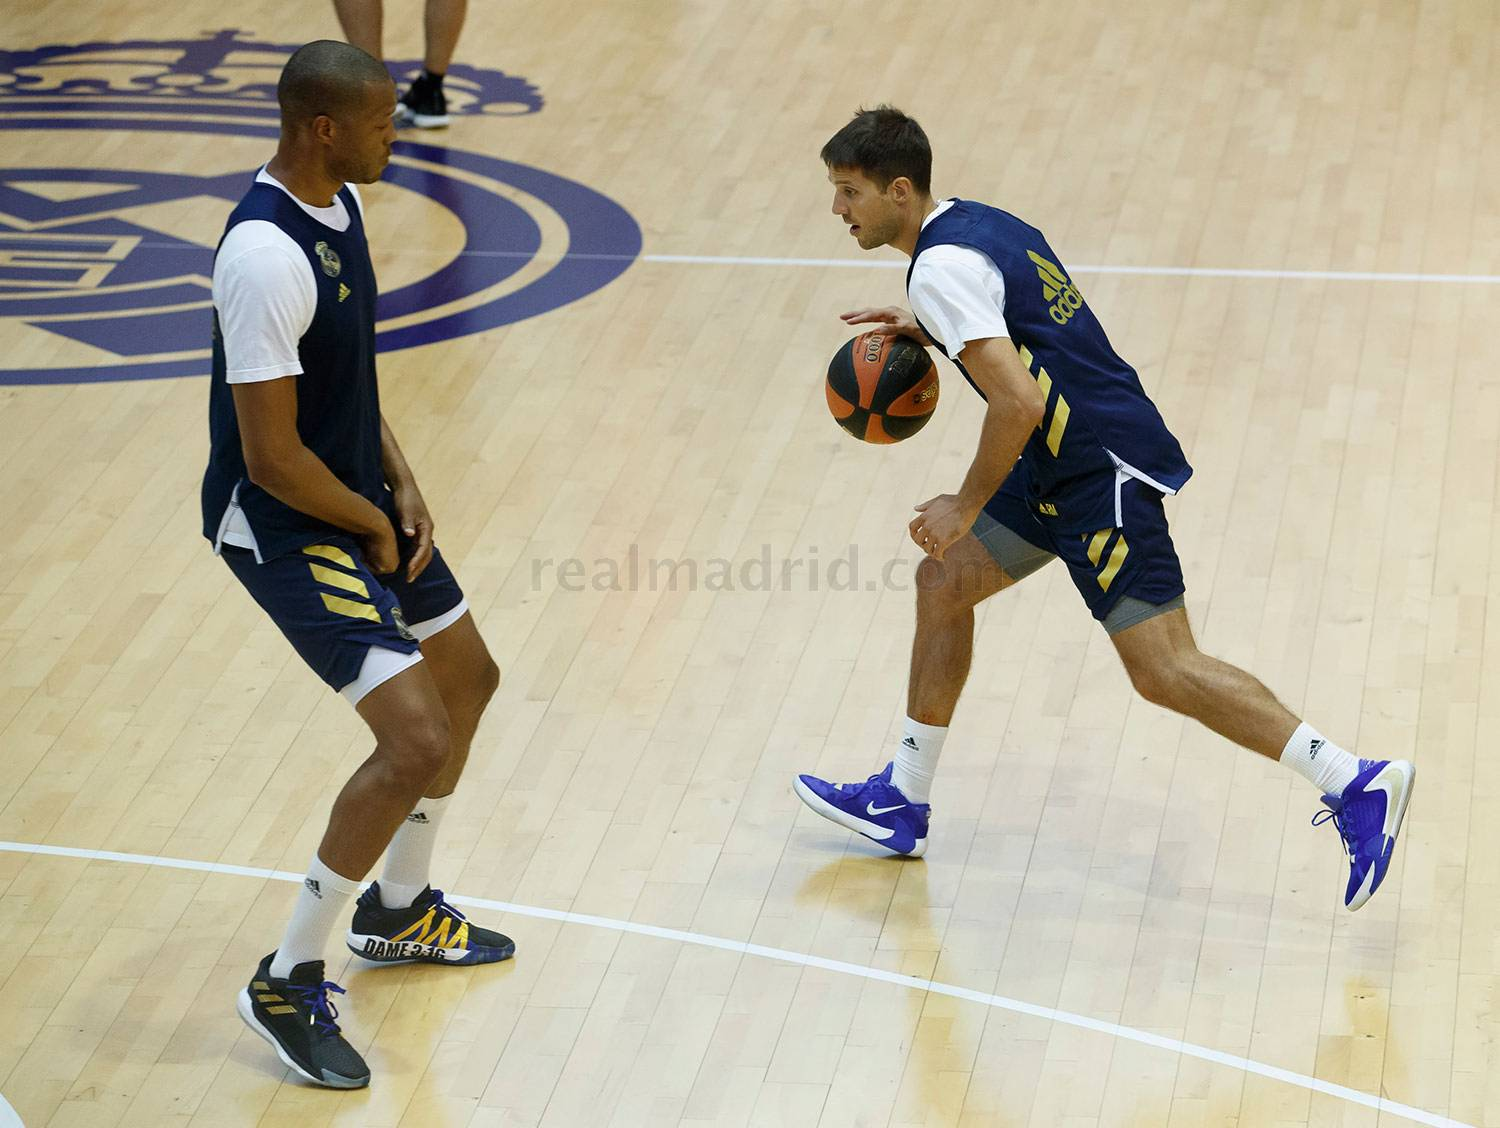 Real Madrid - El Real Madrid de baloncesto inicia la pretemporada - 12-08-2020